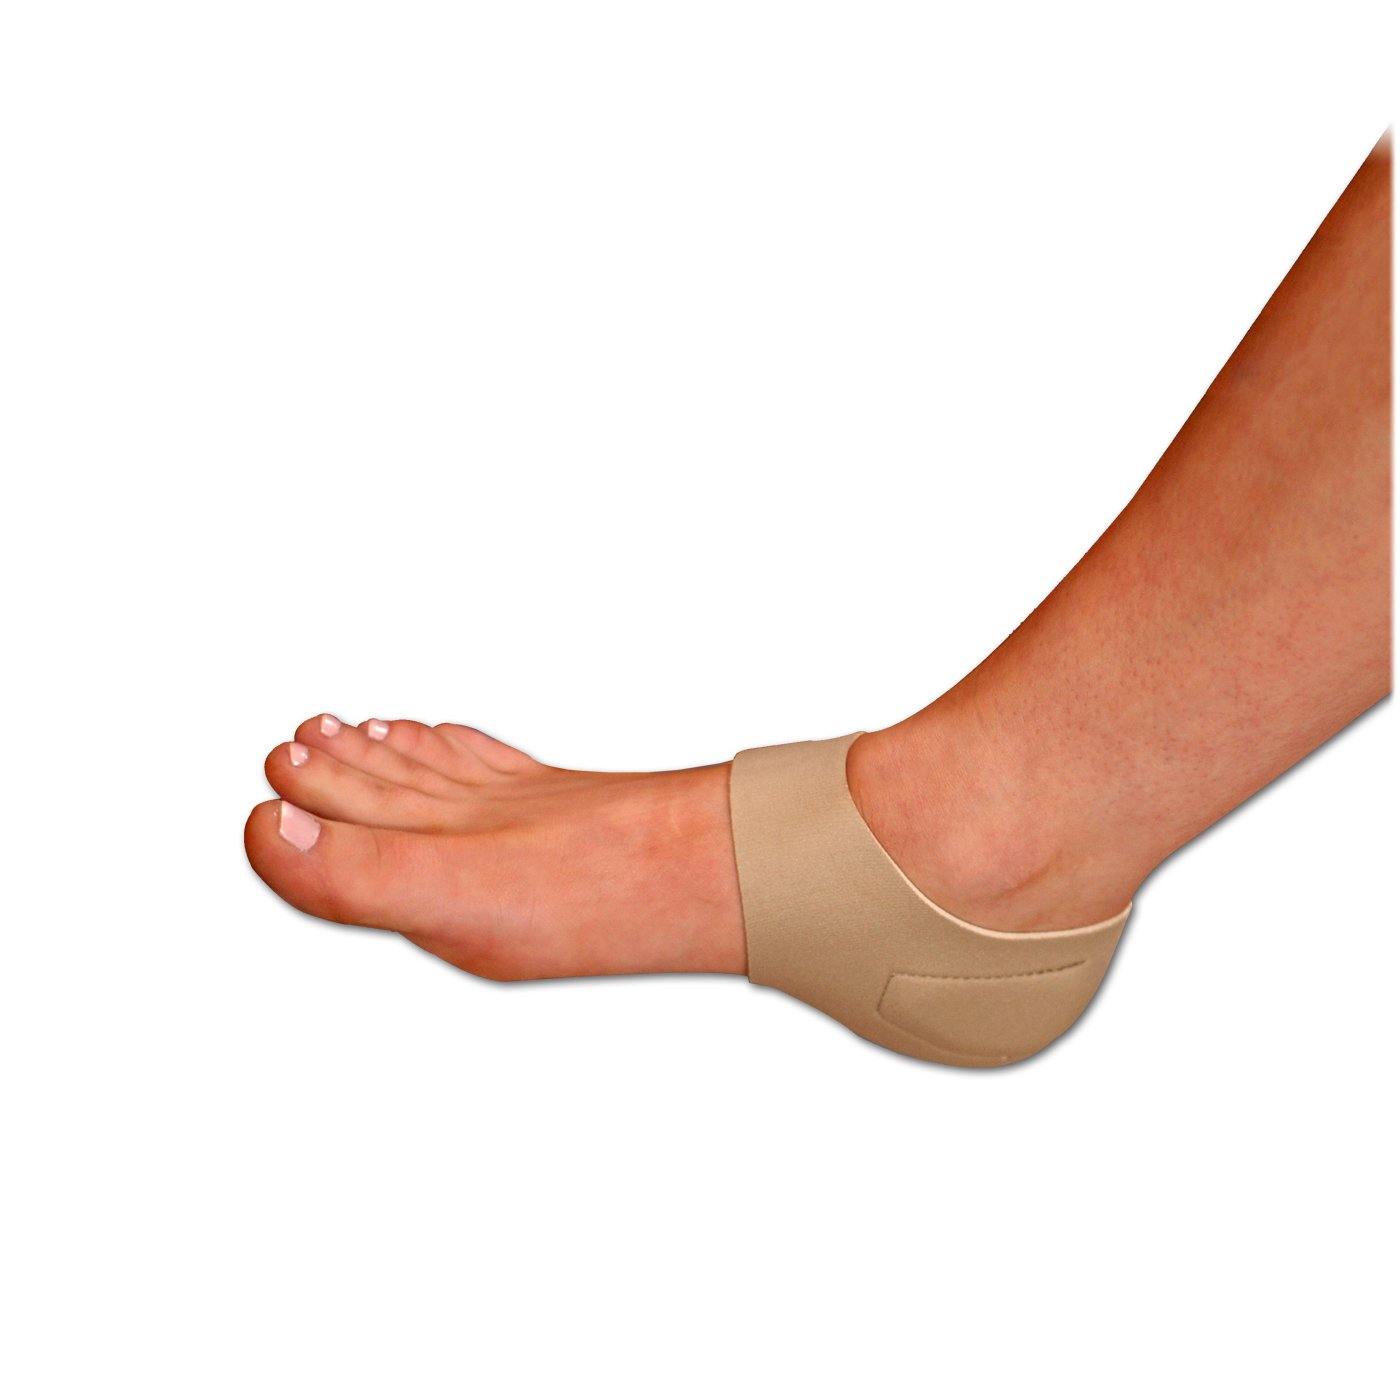 Heel Hugger and Stabilizer with Cooling Gel and Compression Therapy relief for Heel Pain, Foot Pain, Heel Spurs, Plantar Fasciitis, Nude, Patented by Brownmed